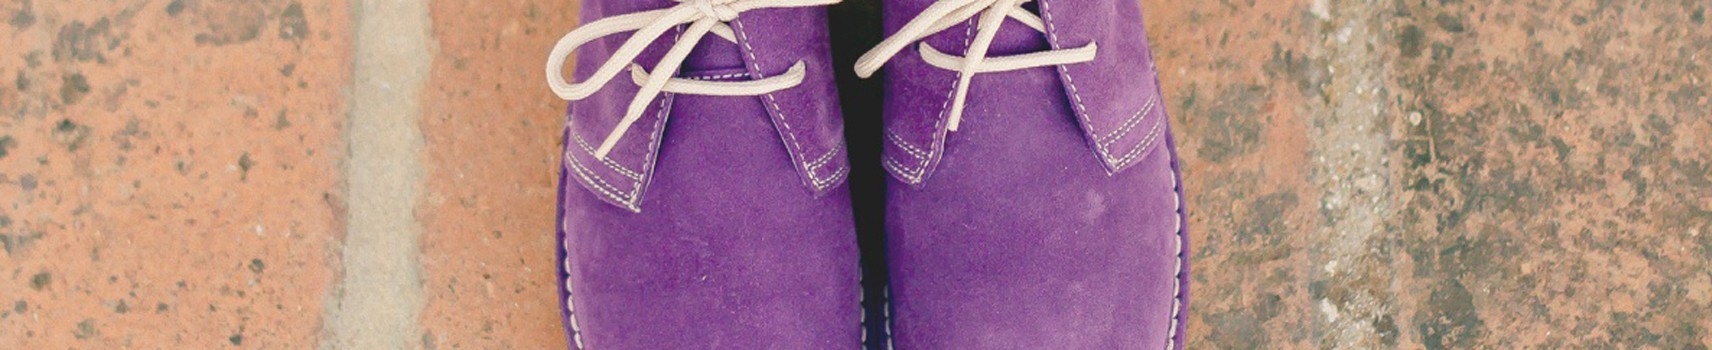 Women Desert Boots and Chukka Boots. Exclusive models for you.